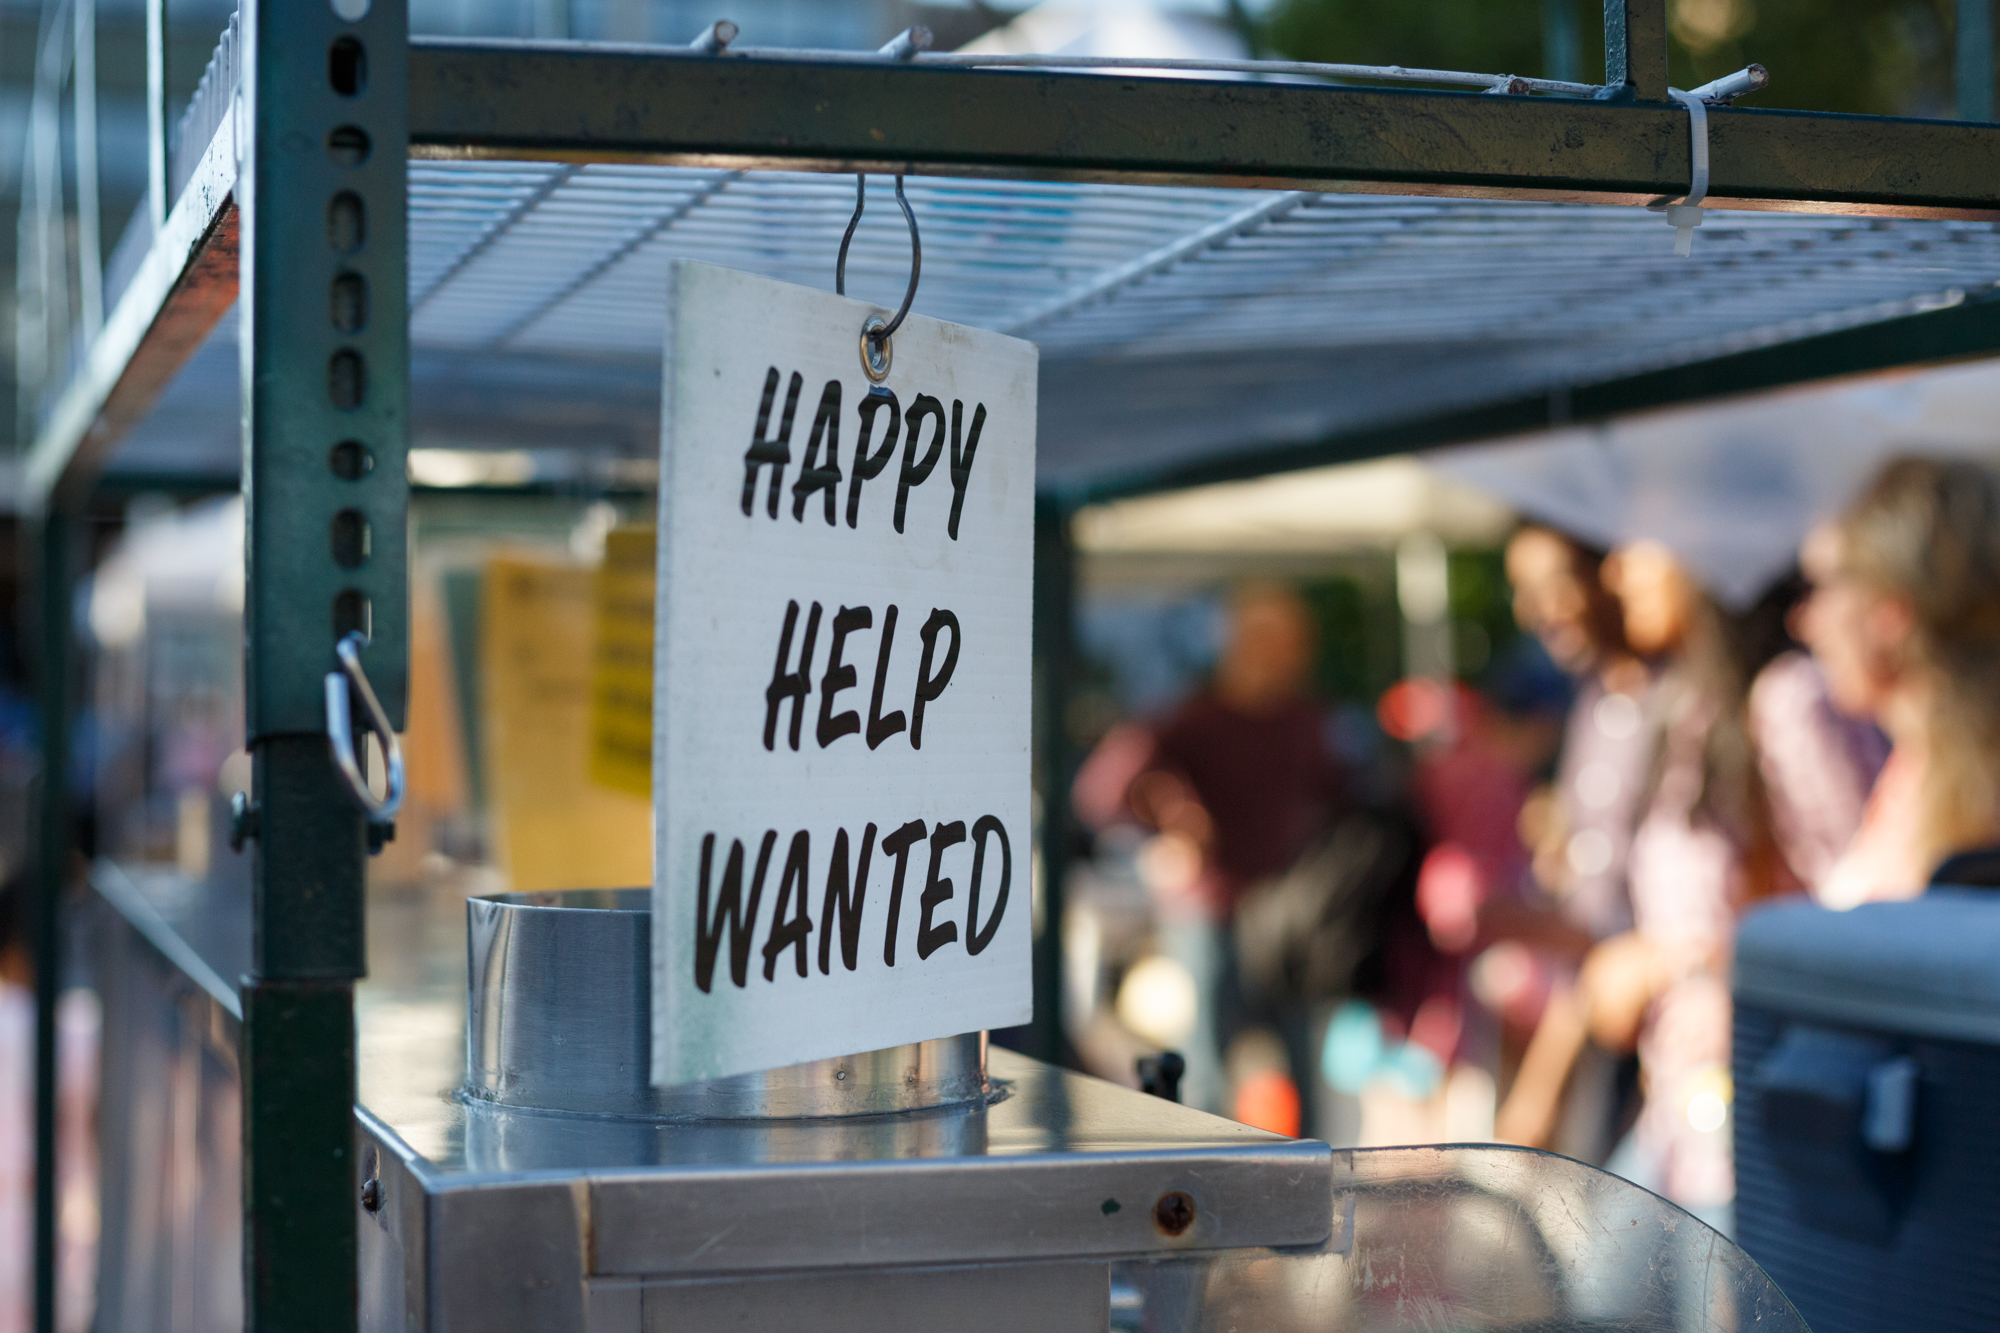 I loved the clarification of the sort of help needed on this sign hanging on an un-manned cart.